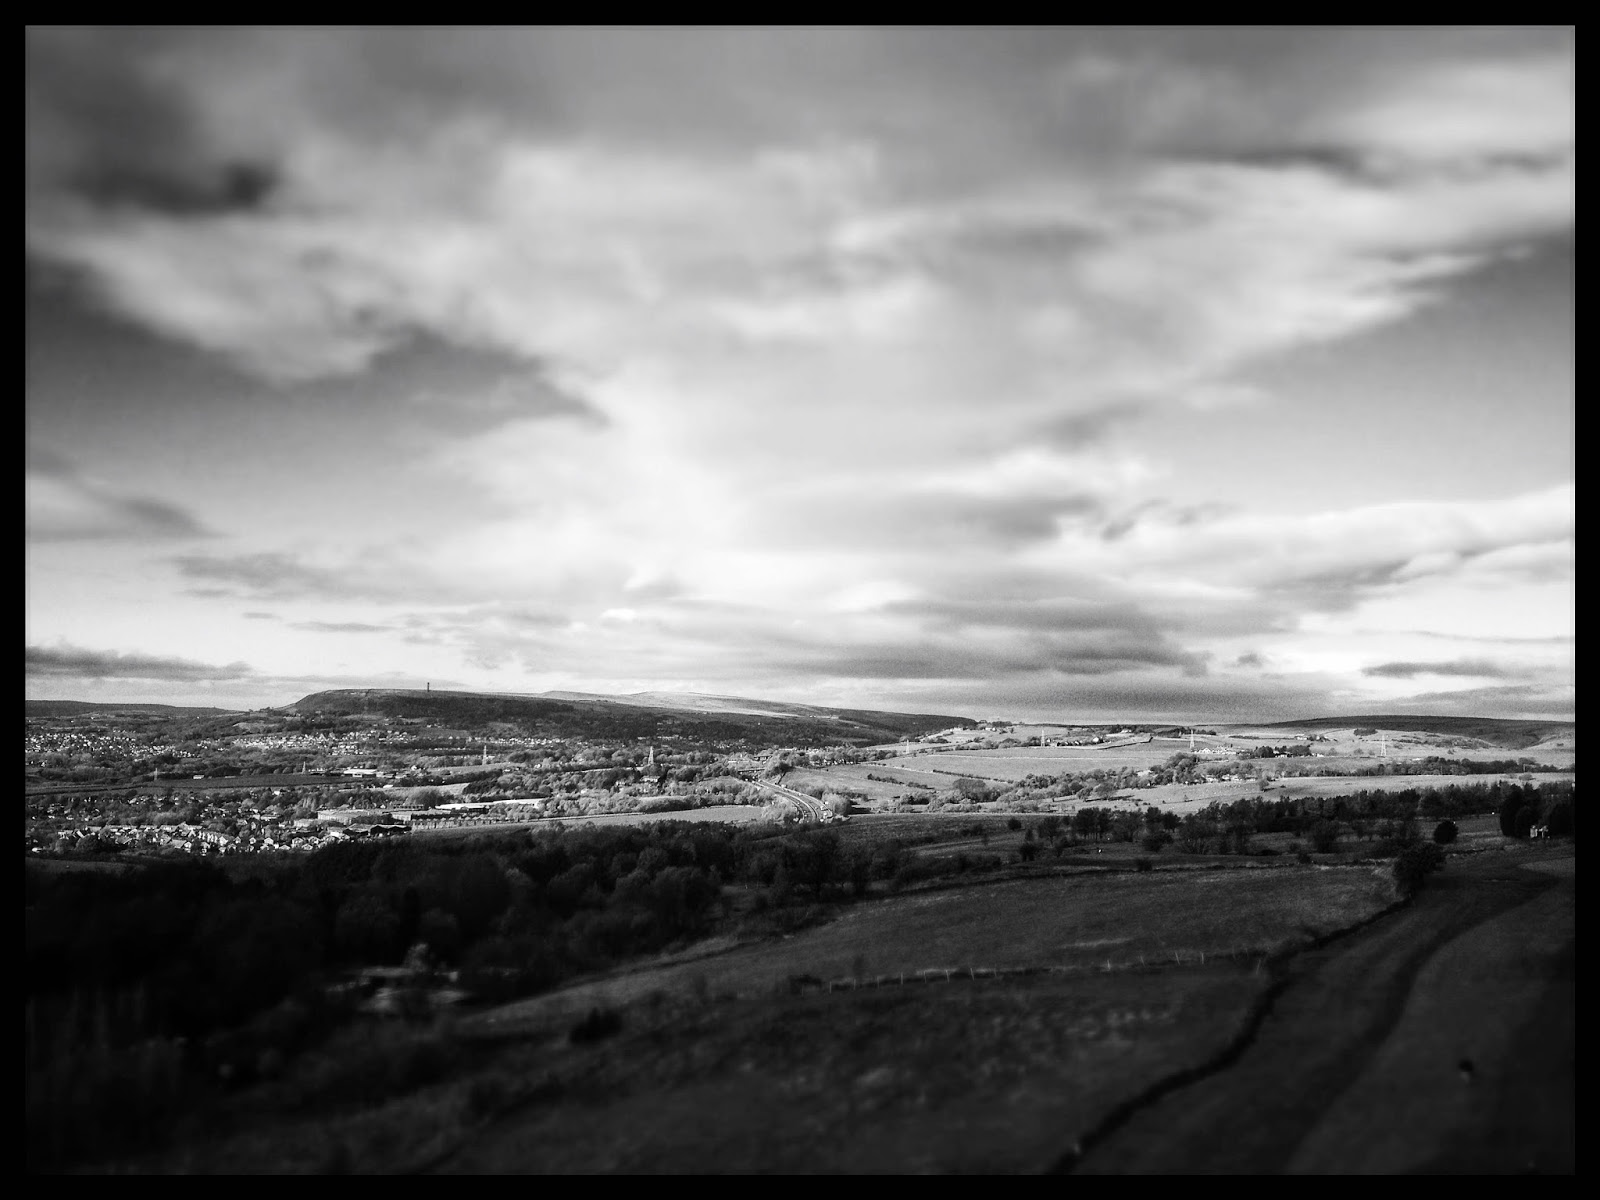 Lancashire, view, black and white iPhone photography